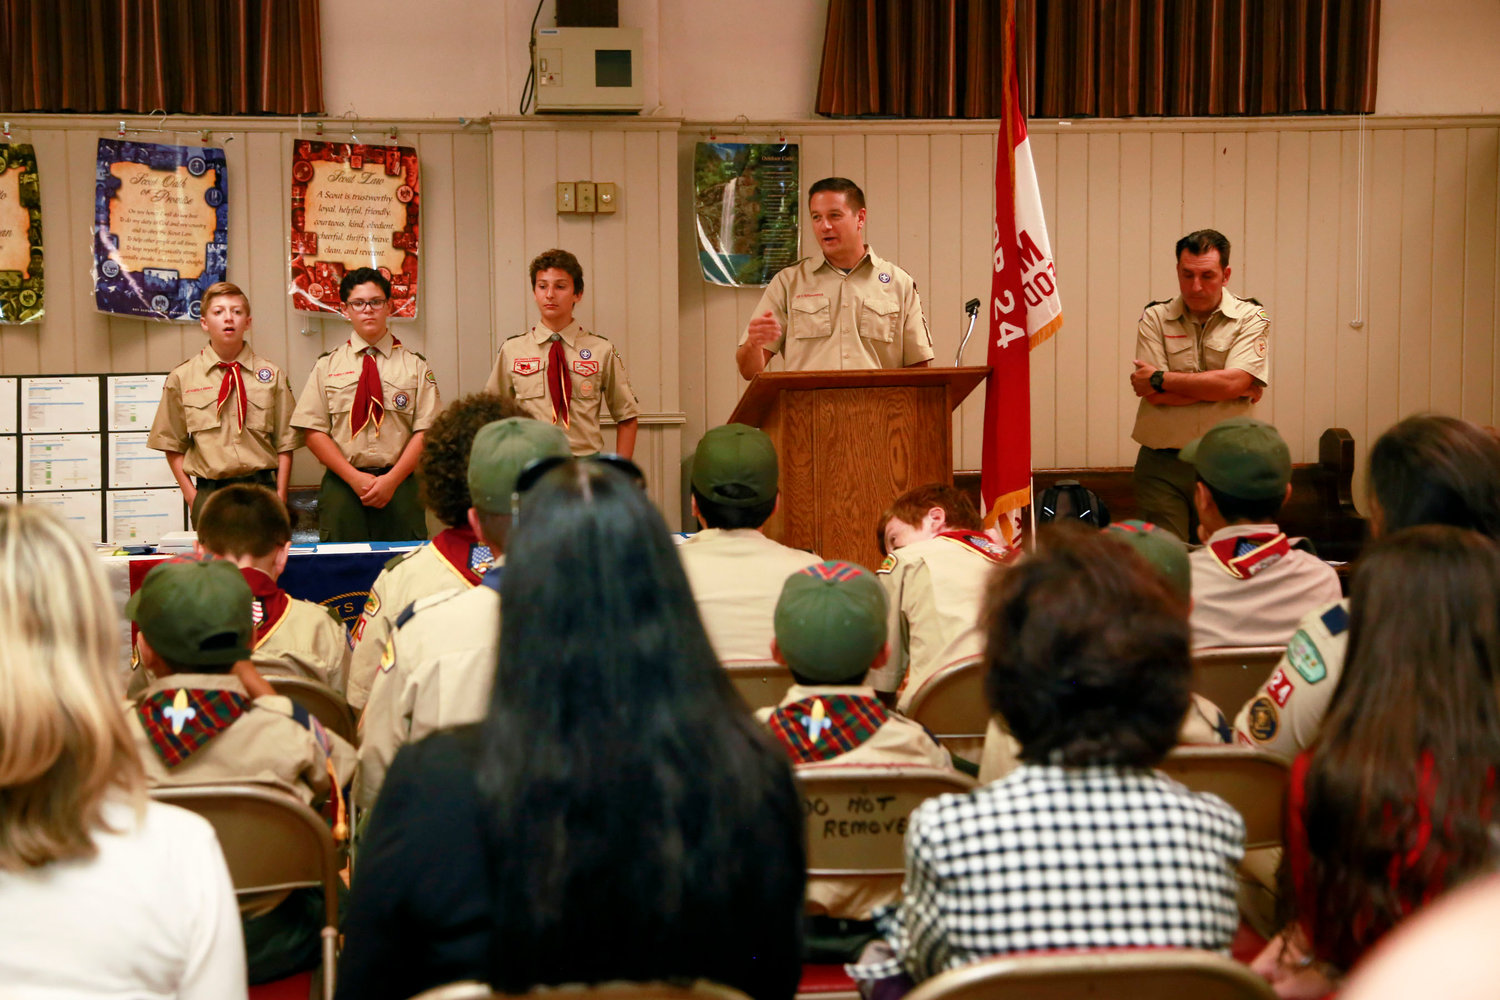 Scout leader Carl Prizzi spoke to scouts and their families.